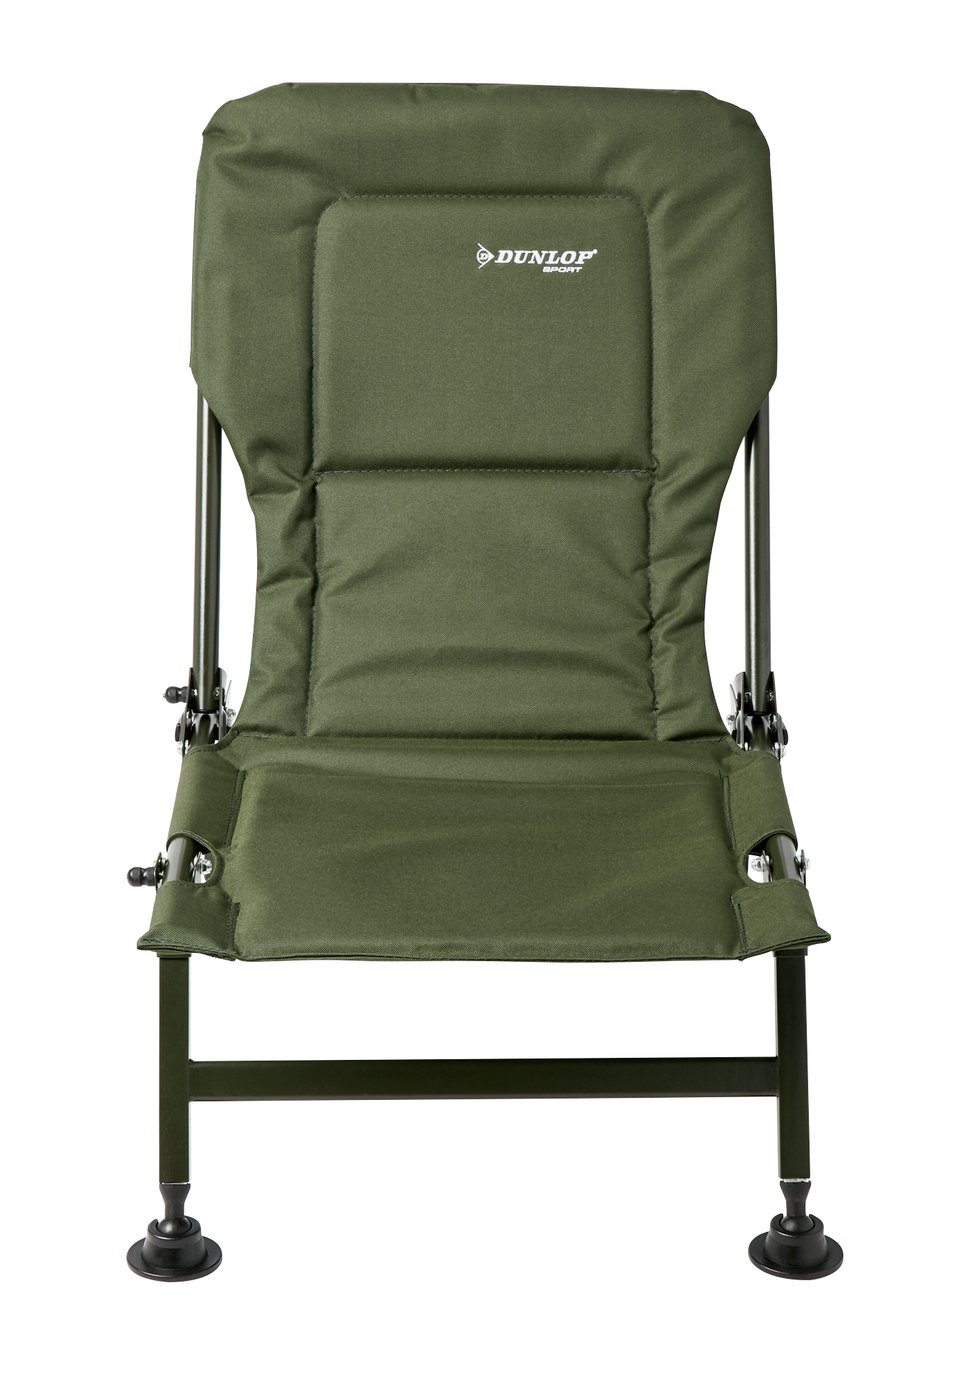 Dunlop Fishing Carp Chair from Dunlop